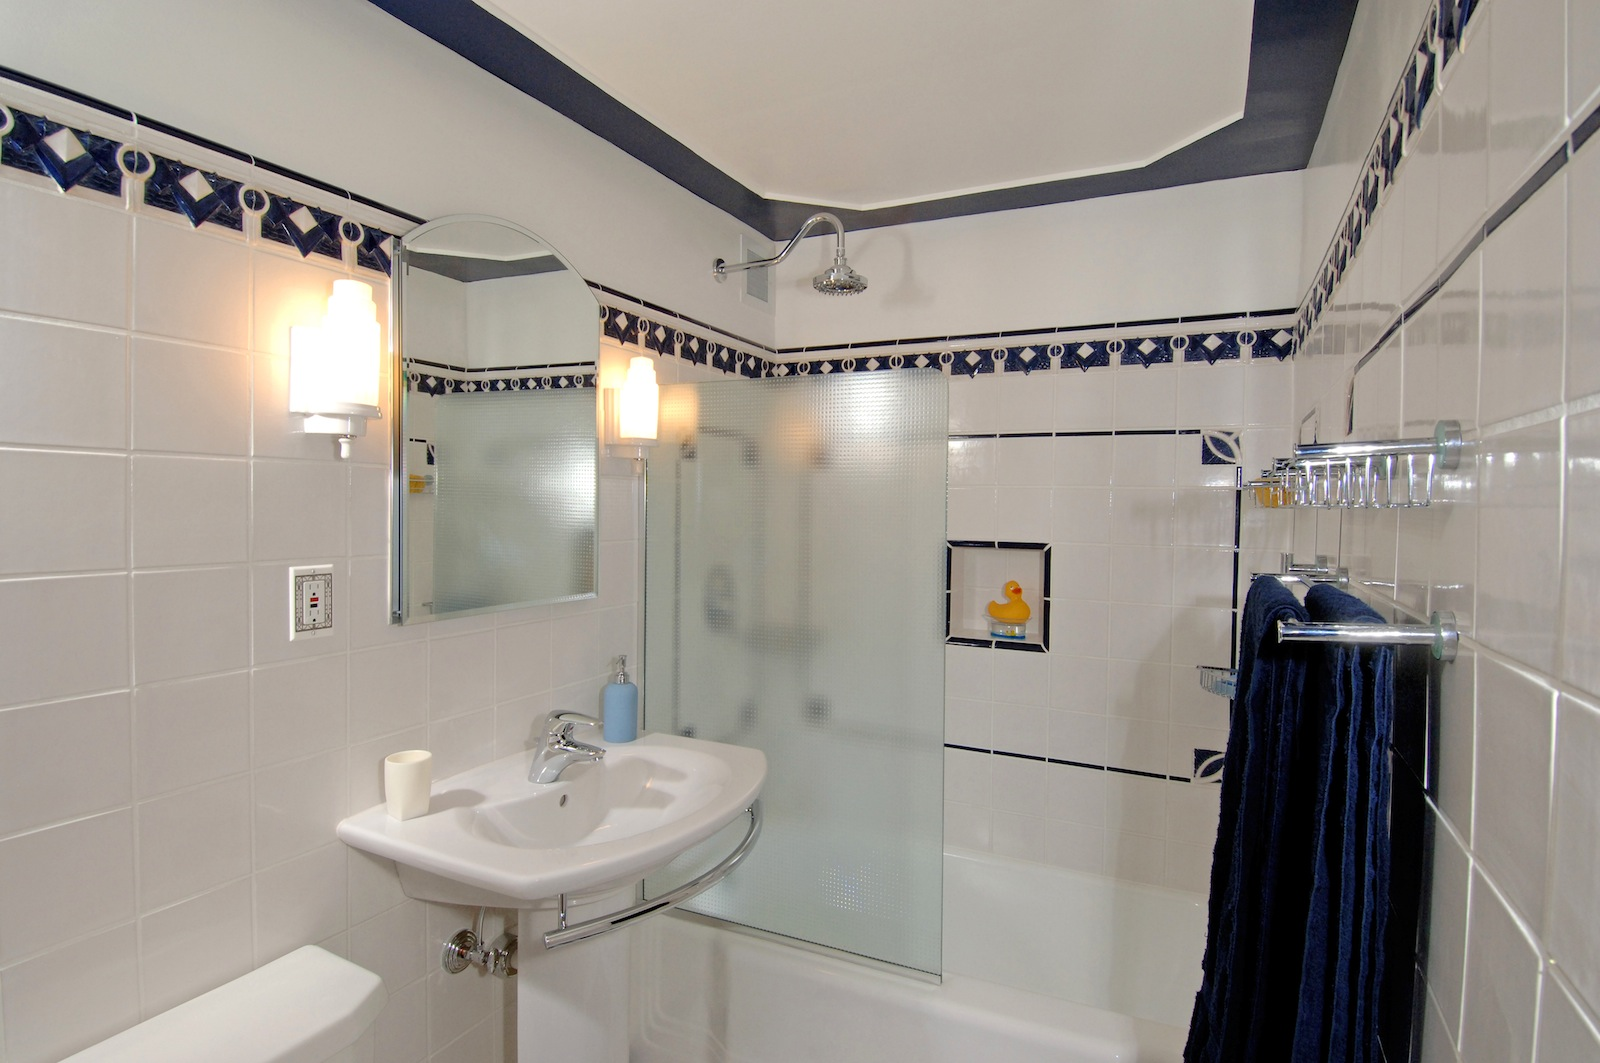 Shaker-Heights-Van-Aken-Blvd.-Condo-Circa-1951-Art-Deco-Bathroom-1